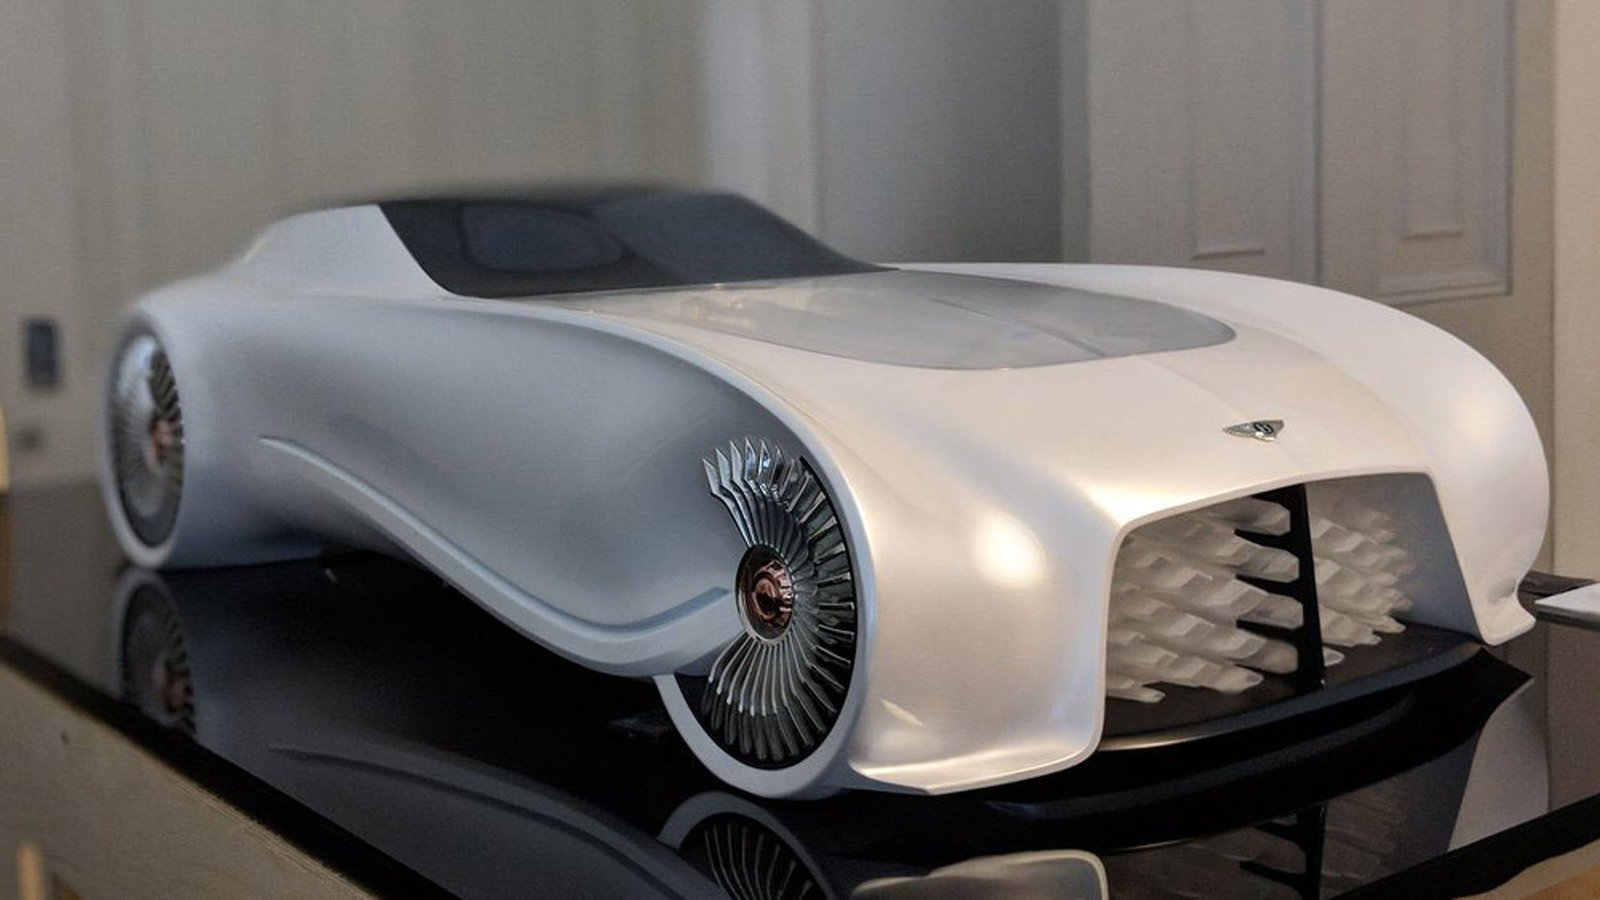 London S Top Design Students Showcase The Bentley Of 2050